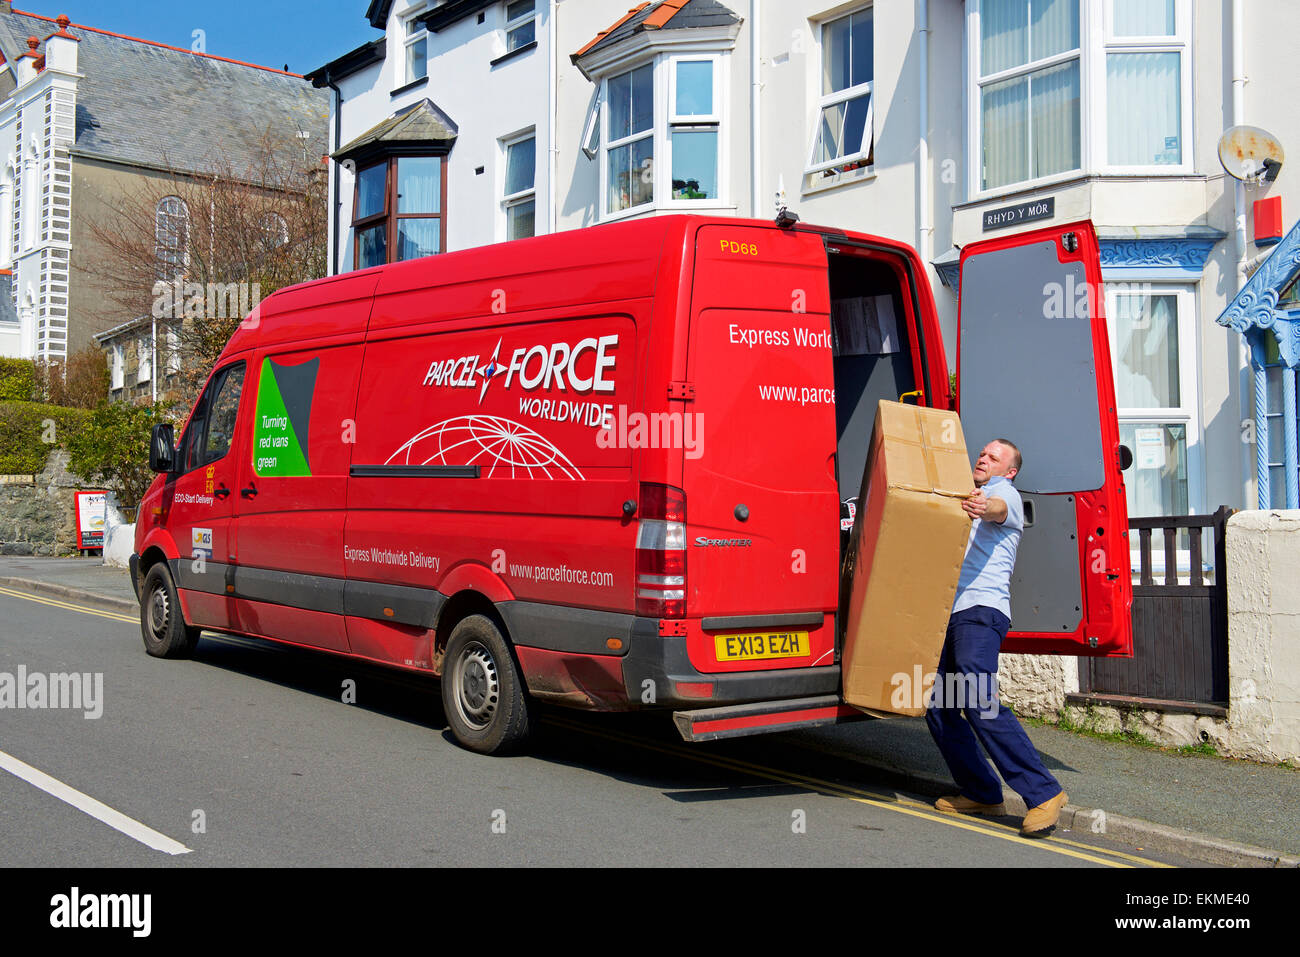 Man unloading large package from Parcel Force delivery van - Stock Image